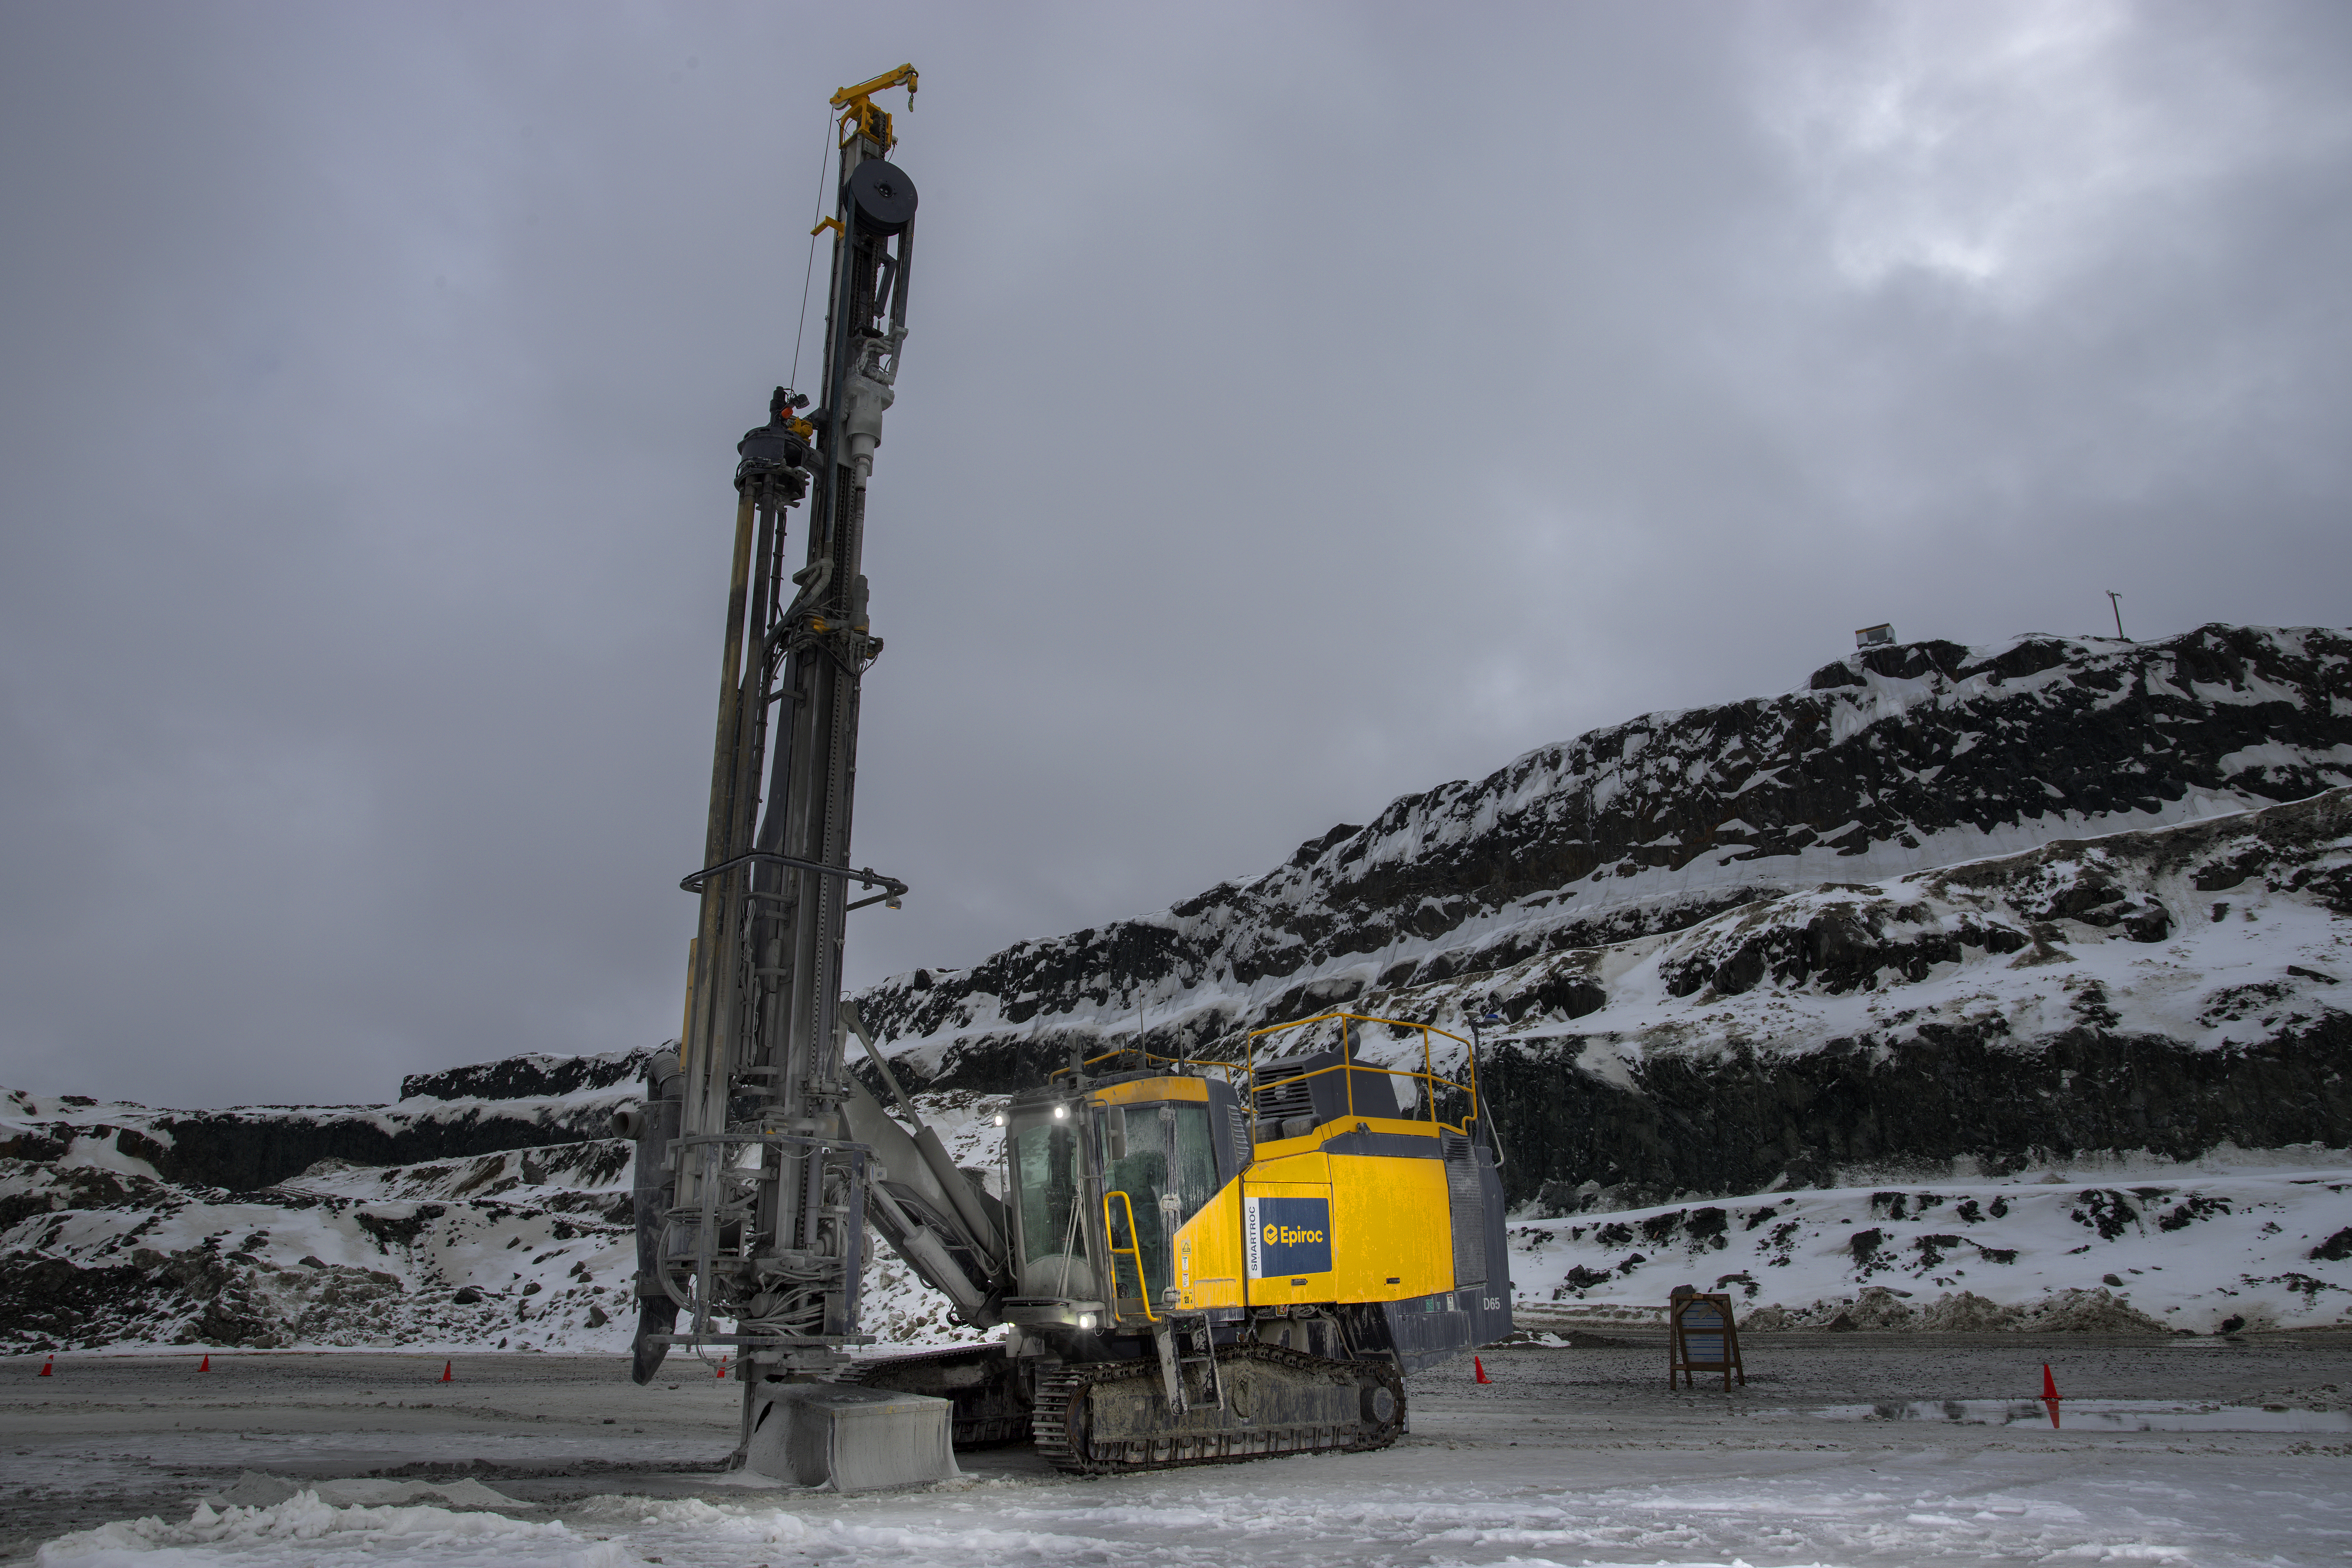 Important milestone in surface drilling automation | Epiroc